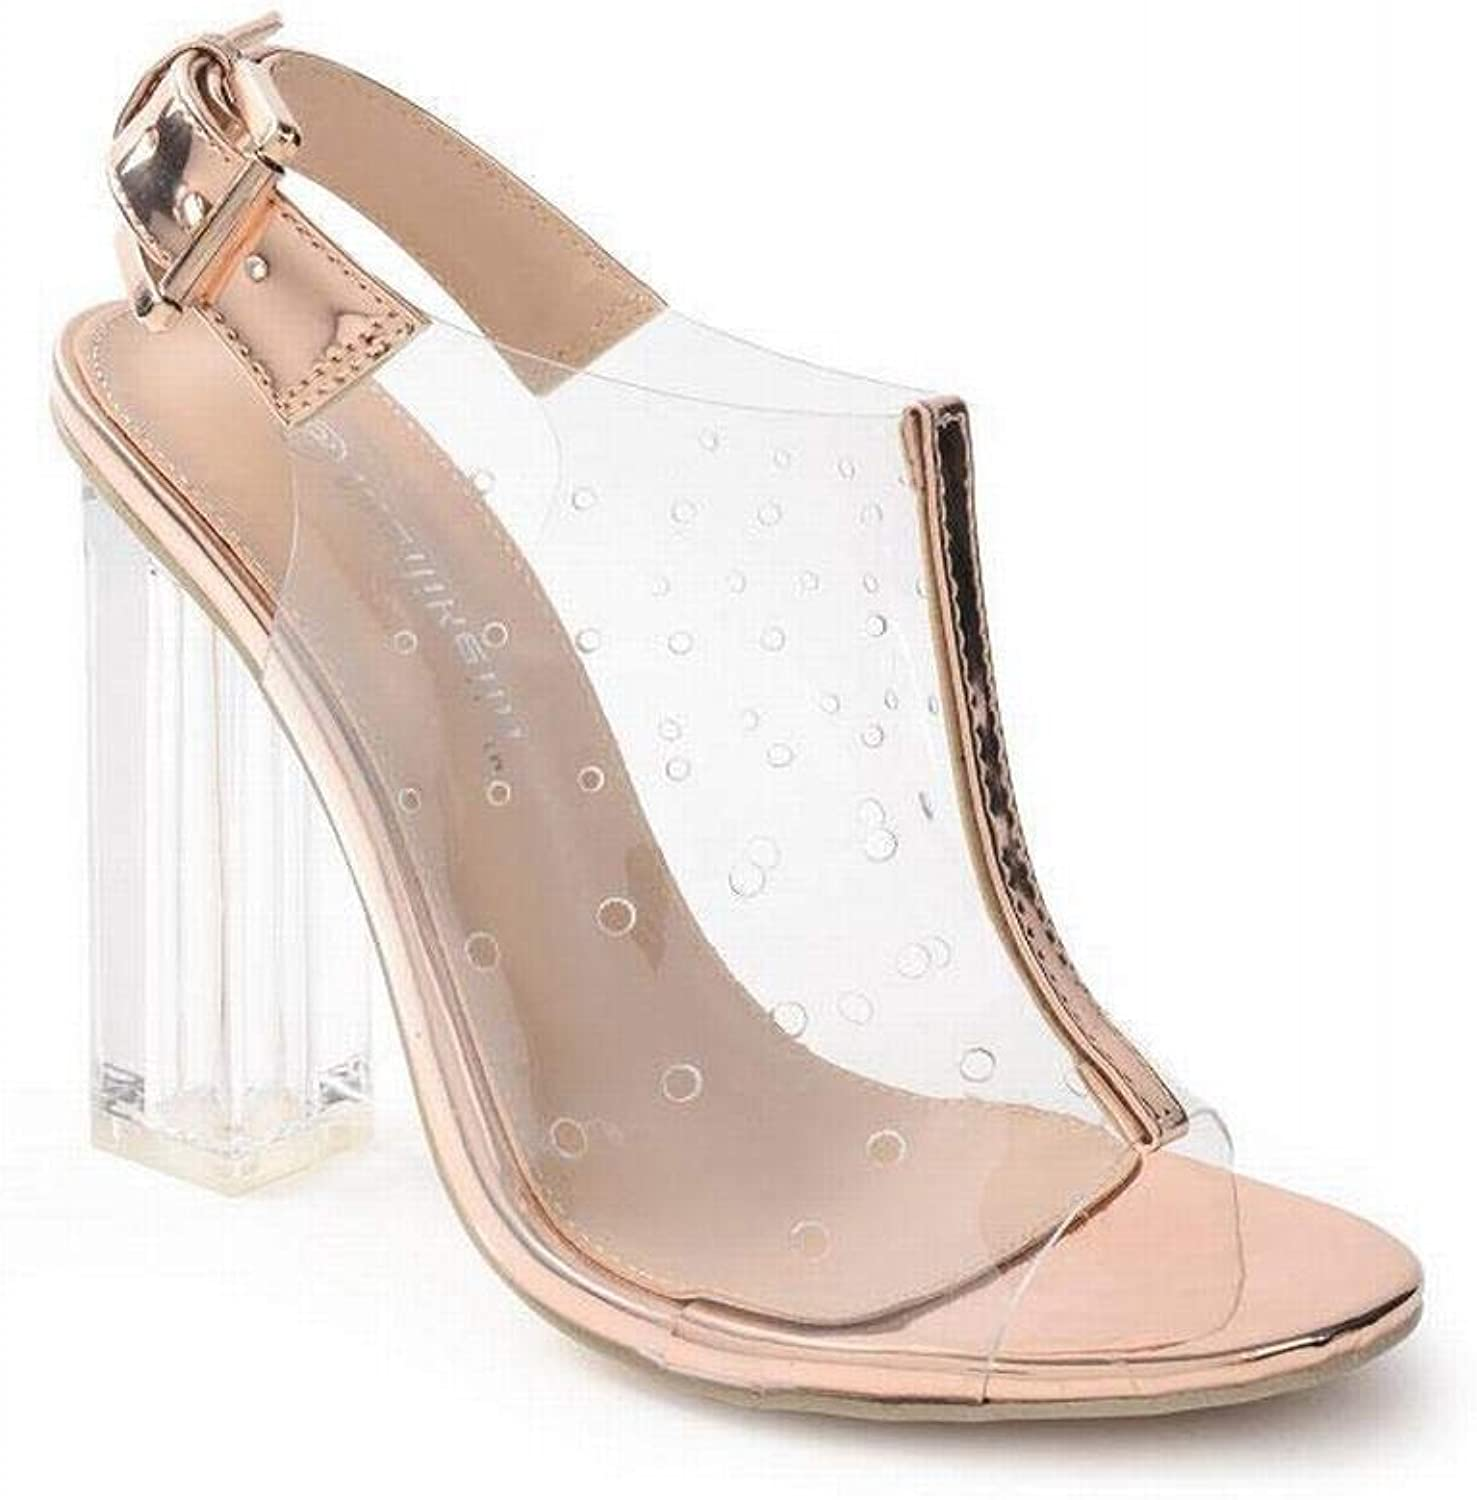 KRPENRIO Women's High Heel Fish Mouth Transparent Film Breathable Hole Crystal shoes Thick With High Heel Sandals